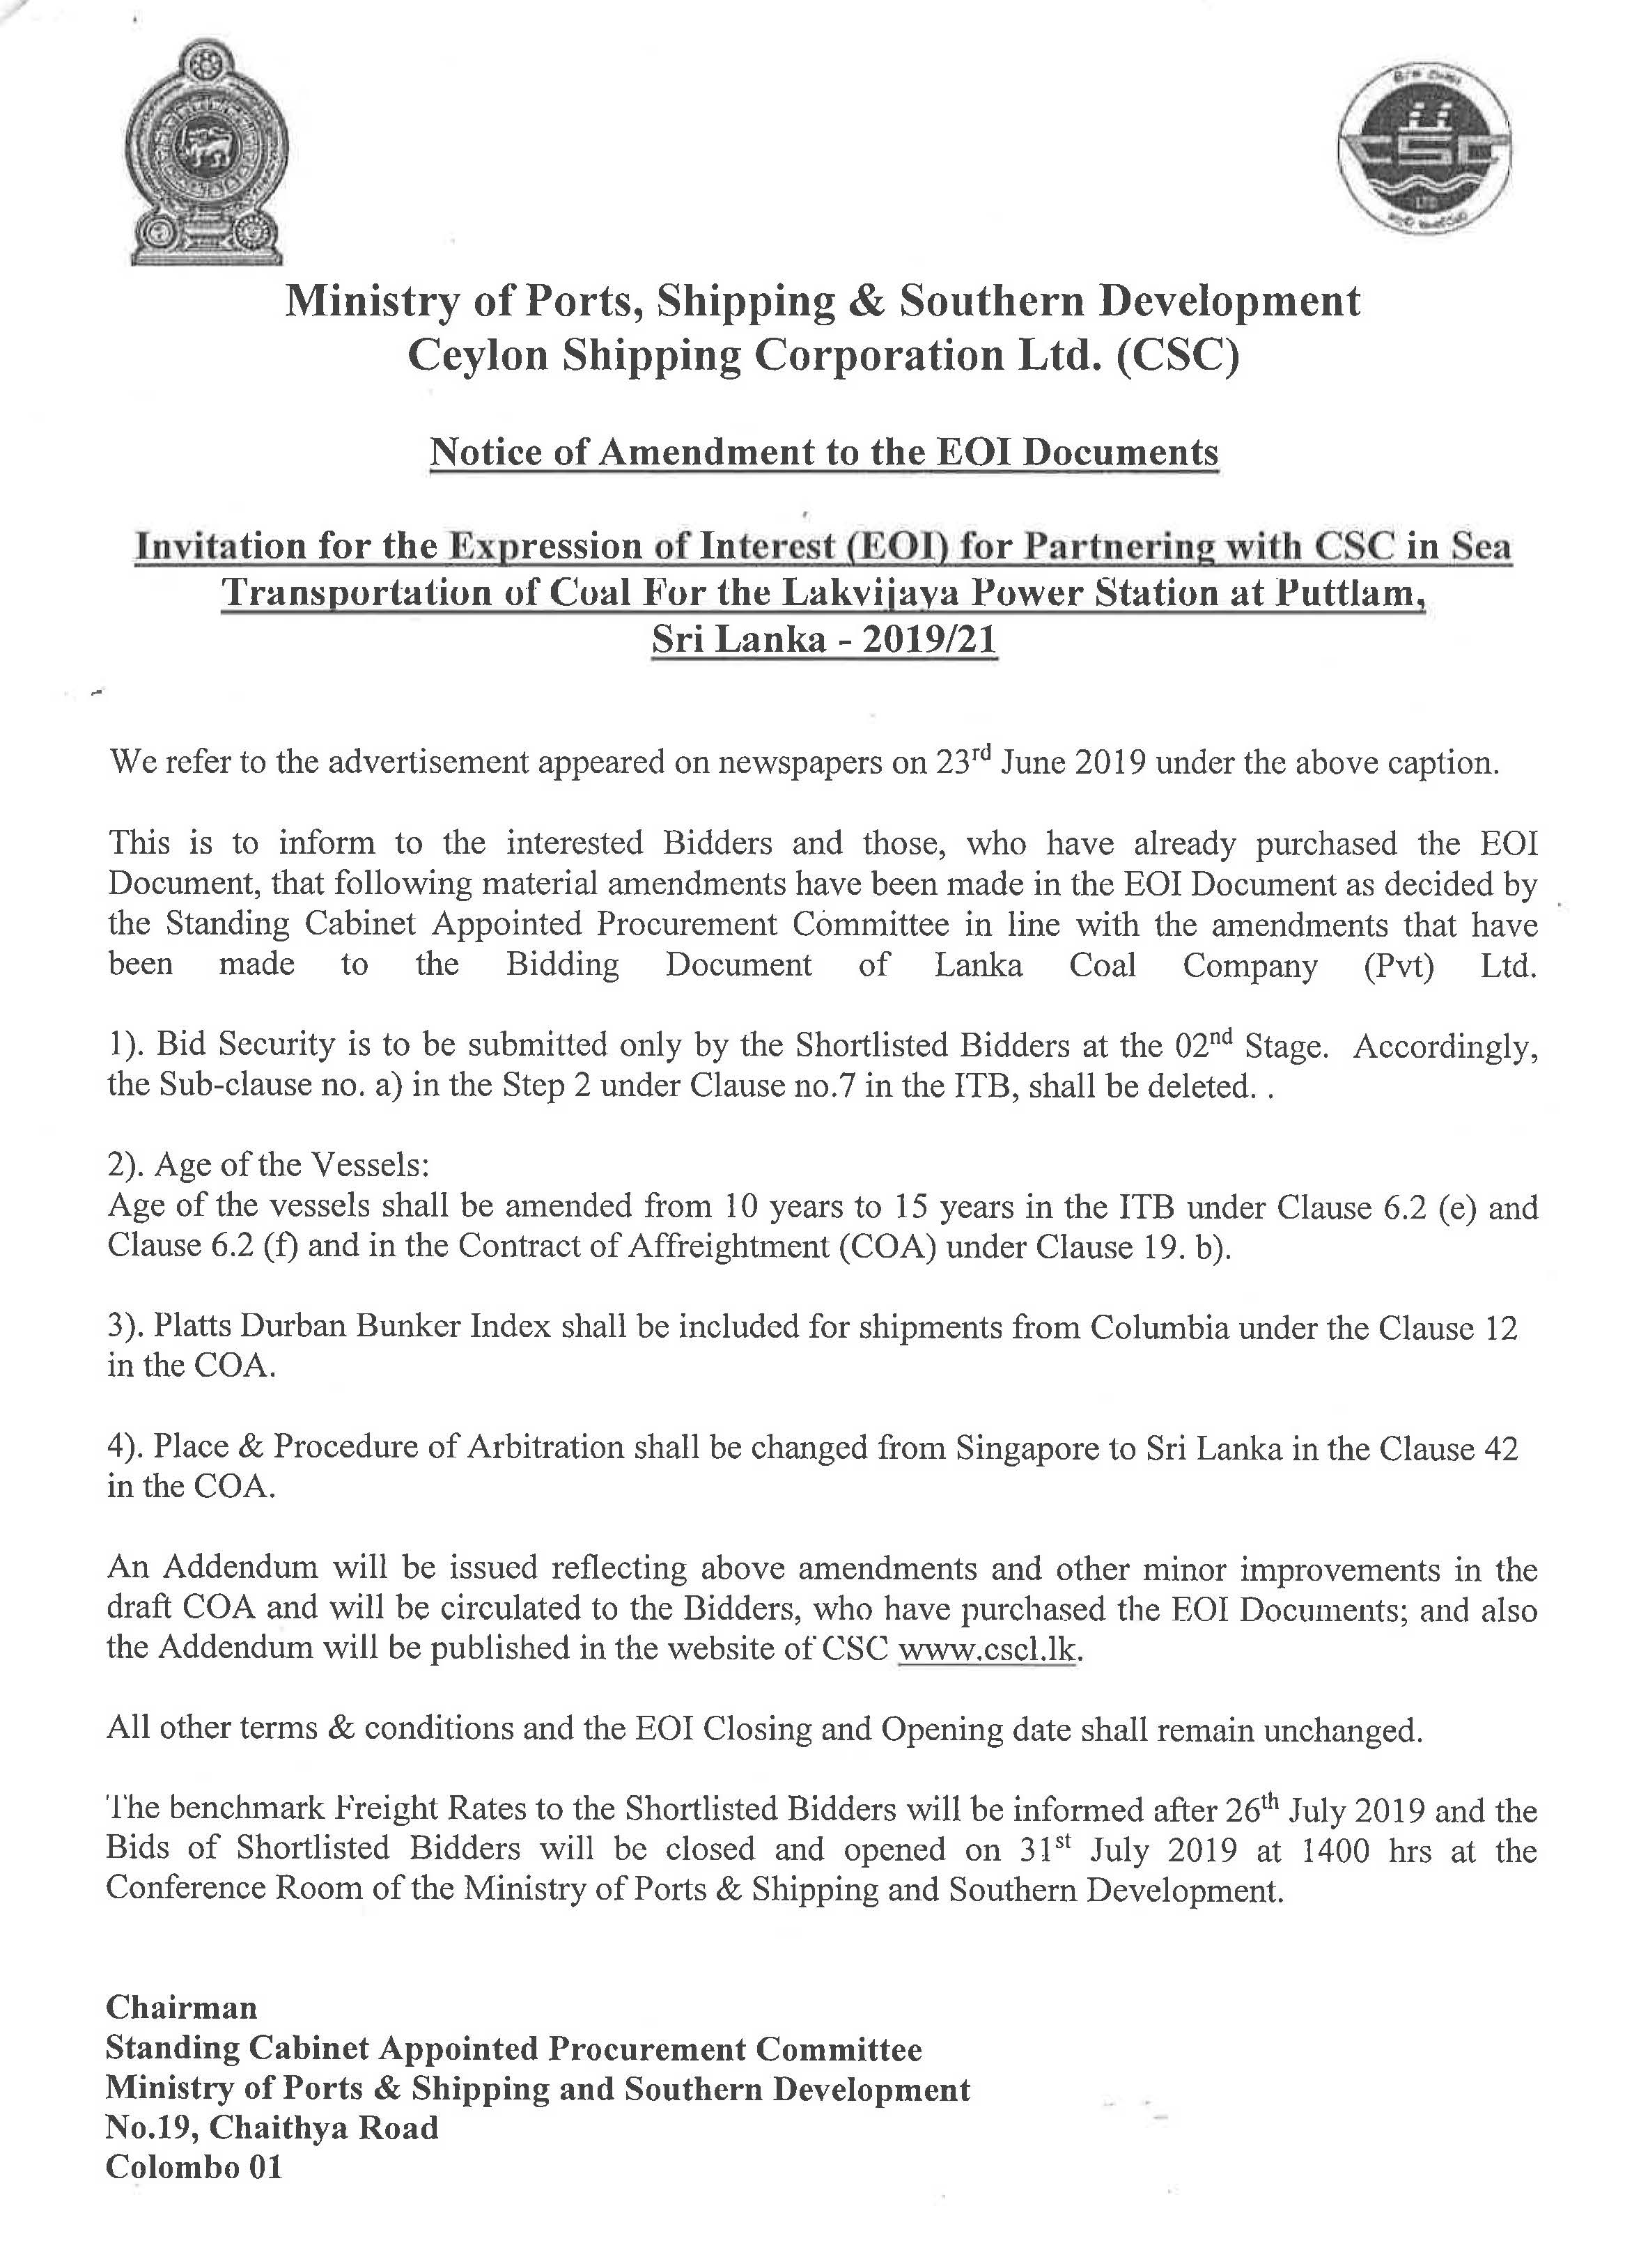 Cir 237 Selection of a suitable partner for shipping